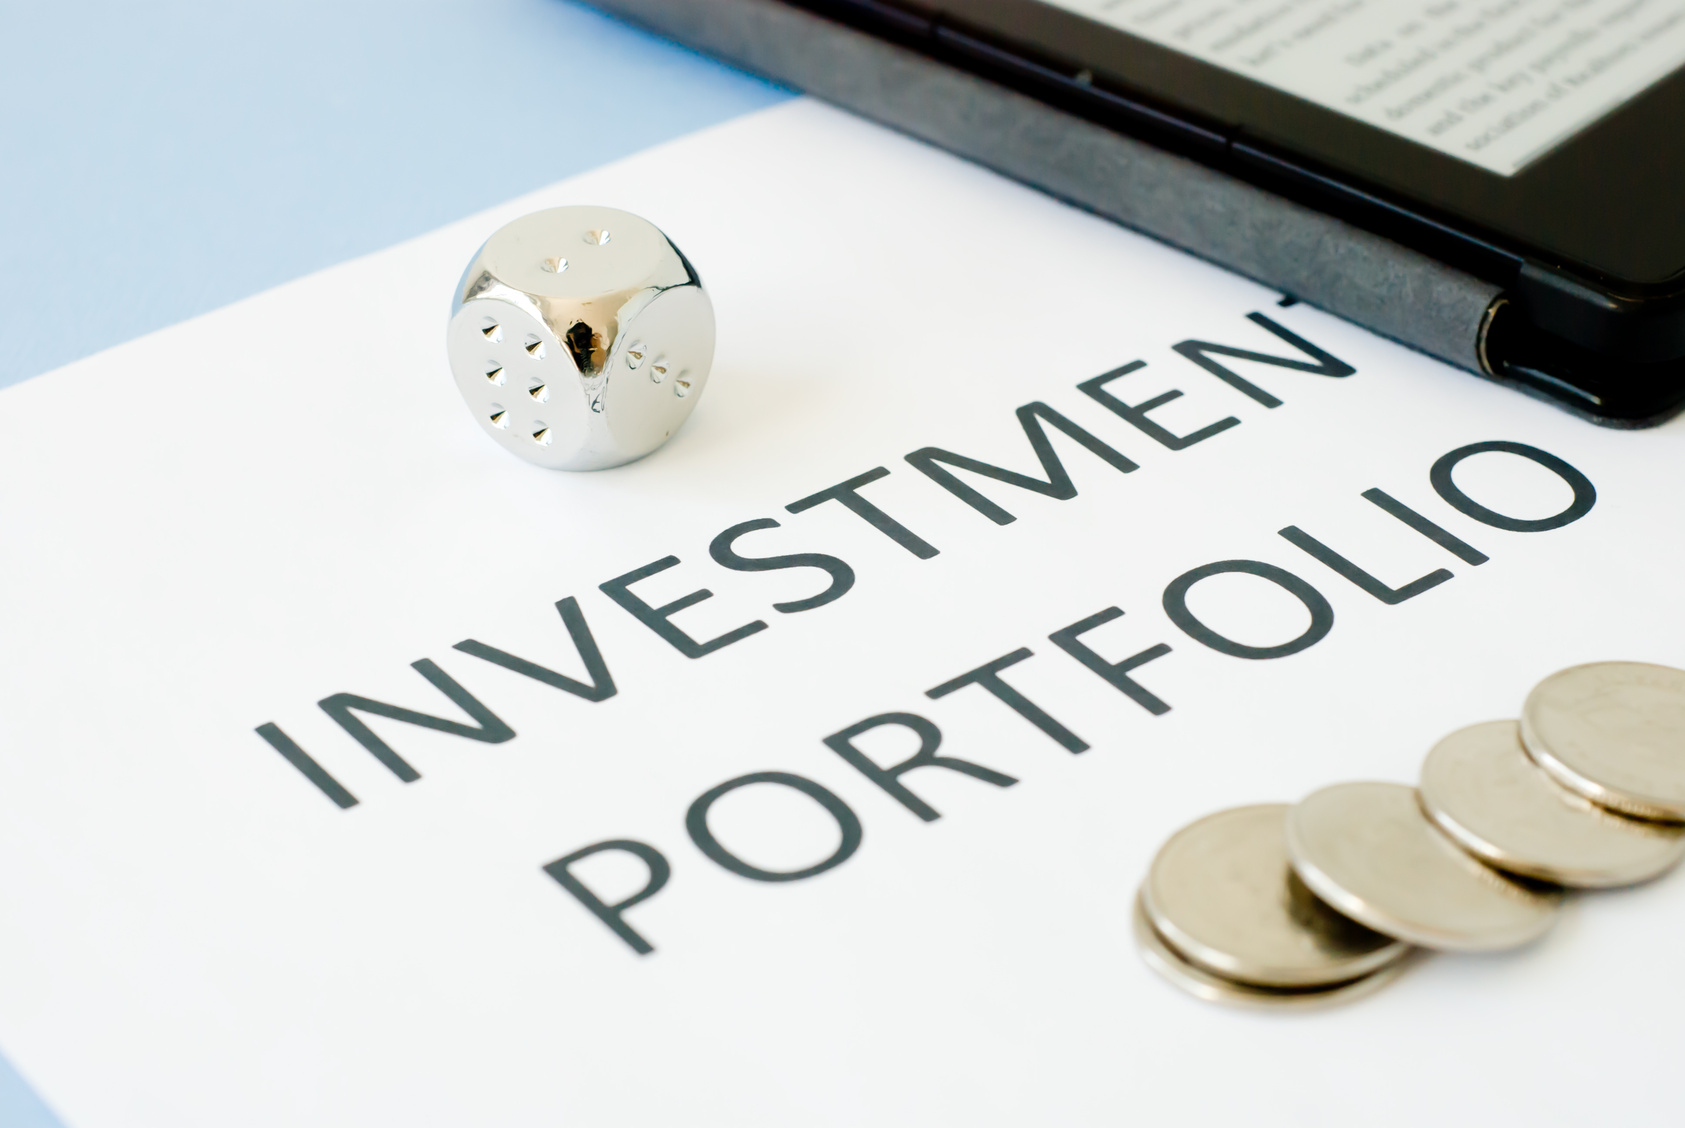 Portfolio Management | Bond Investments and Risk | Wiseradvisor.com